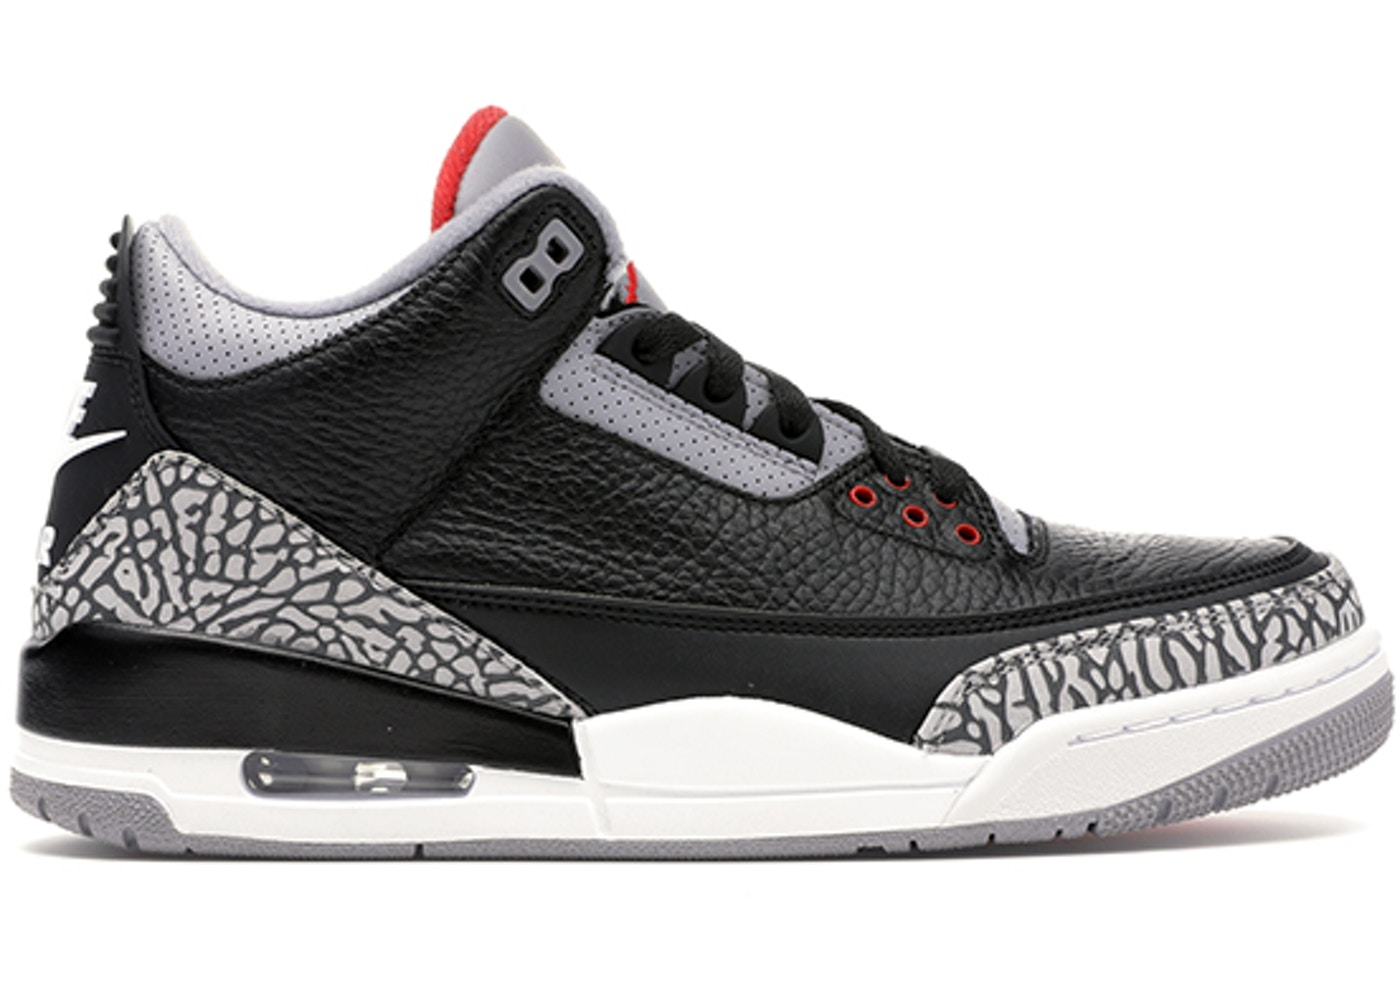 cd207883949923 Jordan 3 Retro Black Cement (2018) - 854262-001